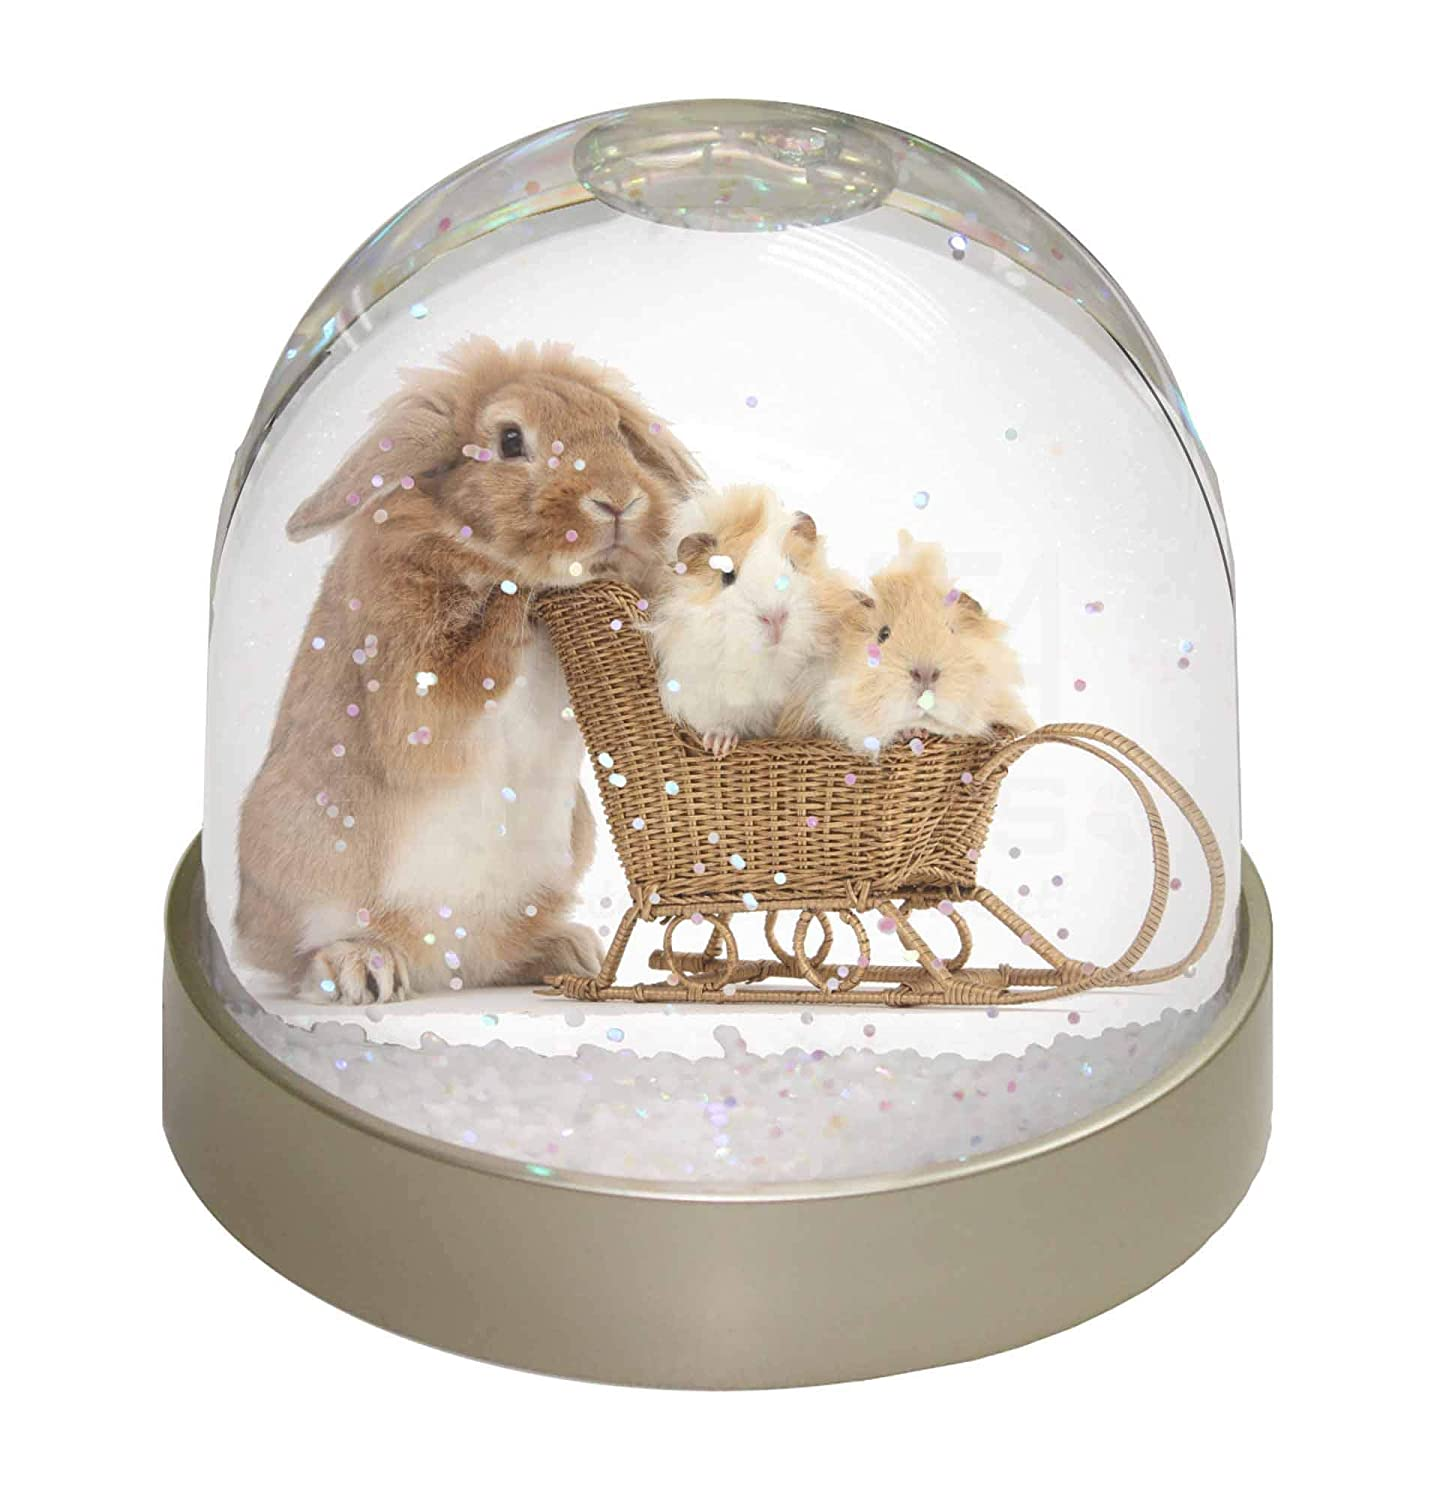 AR-12GL Rabbit and Guinea Pigs Photo Snow Globe Waterball Stocking Filler Gift